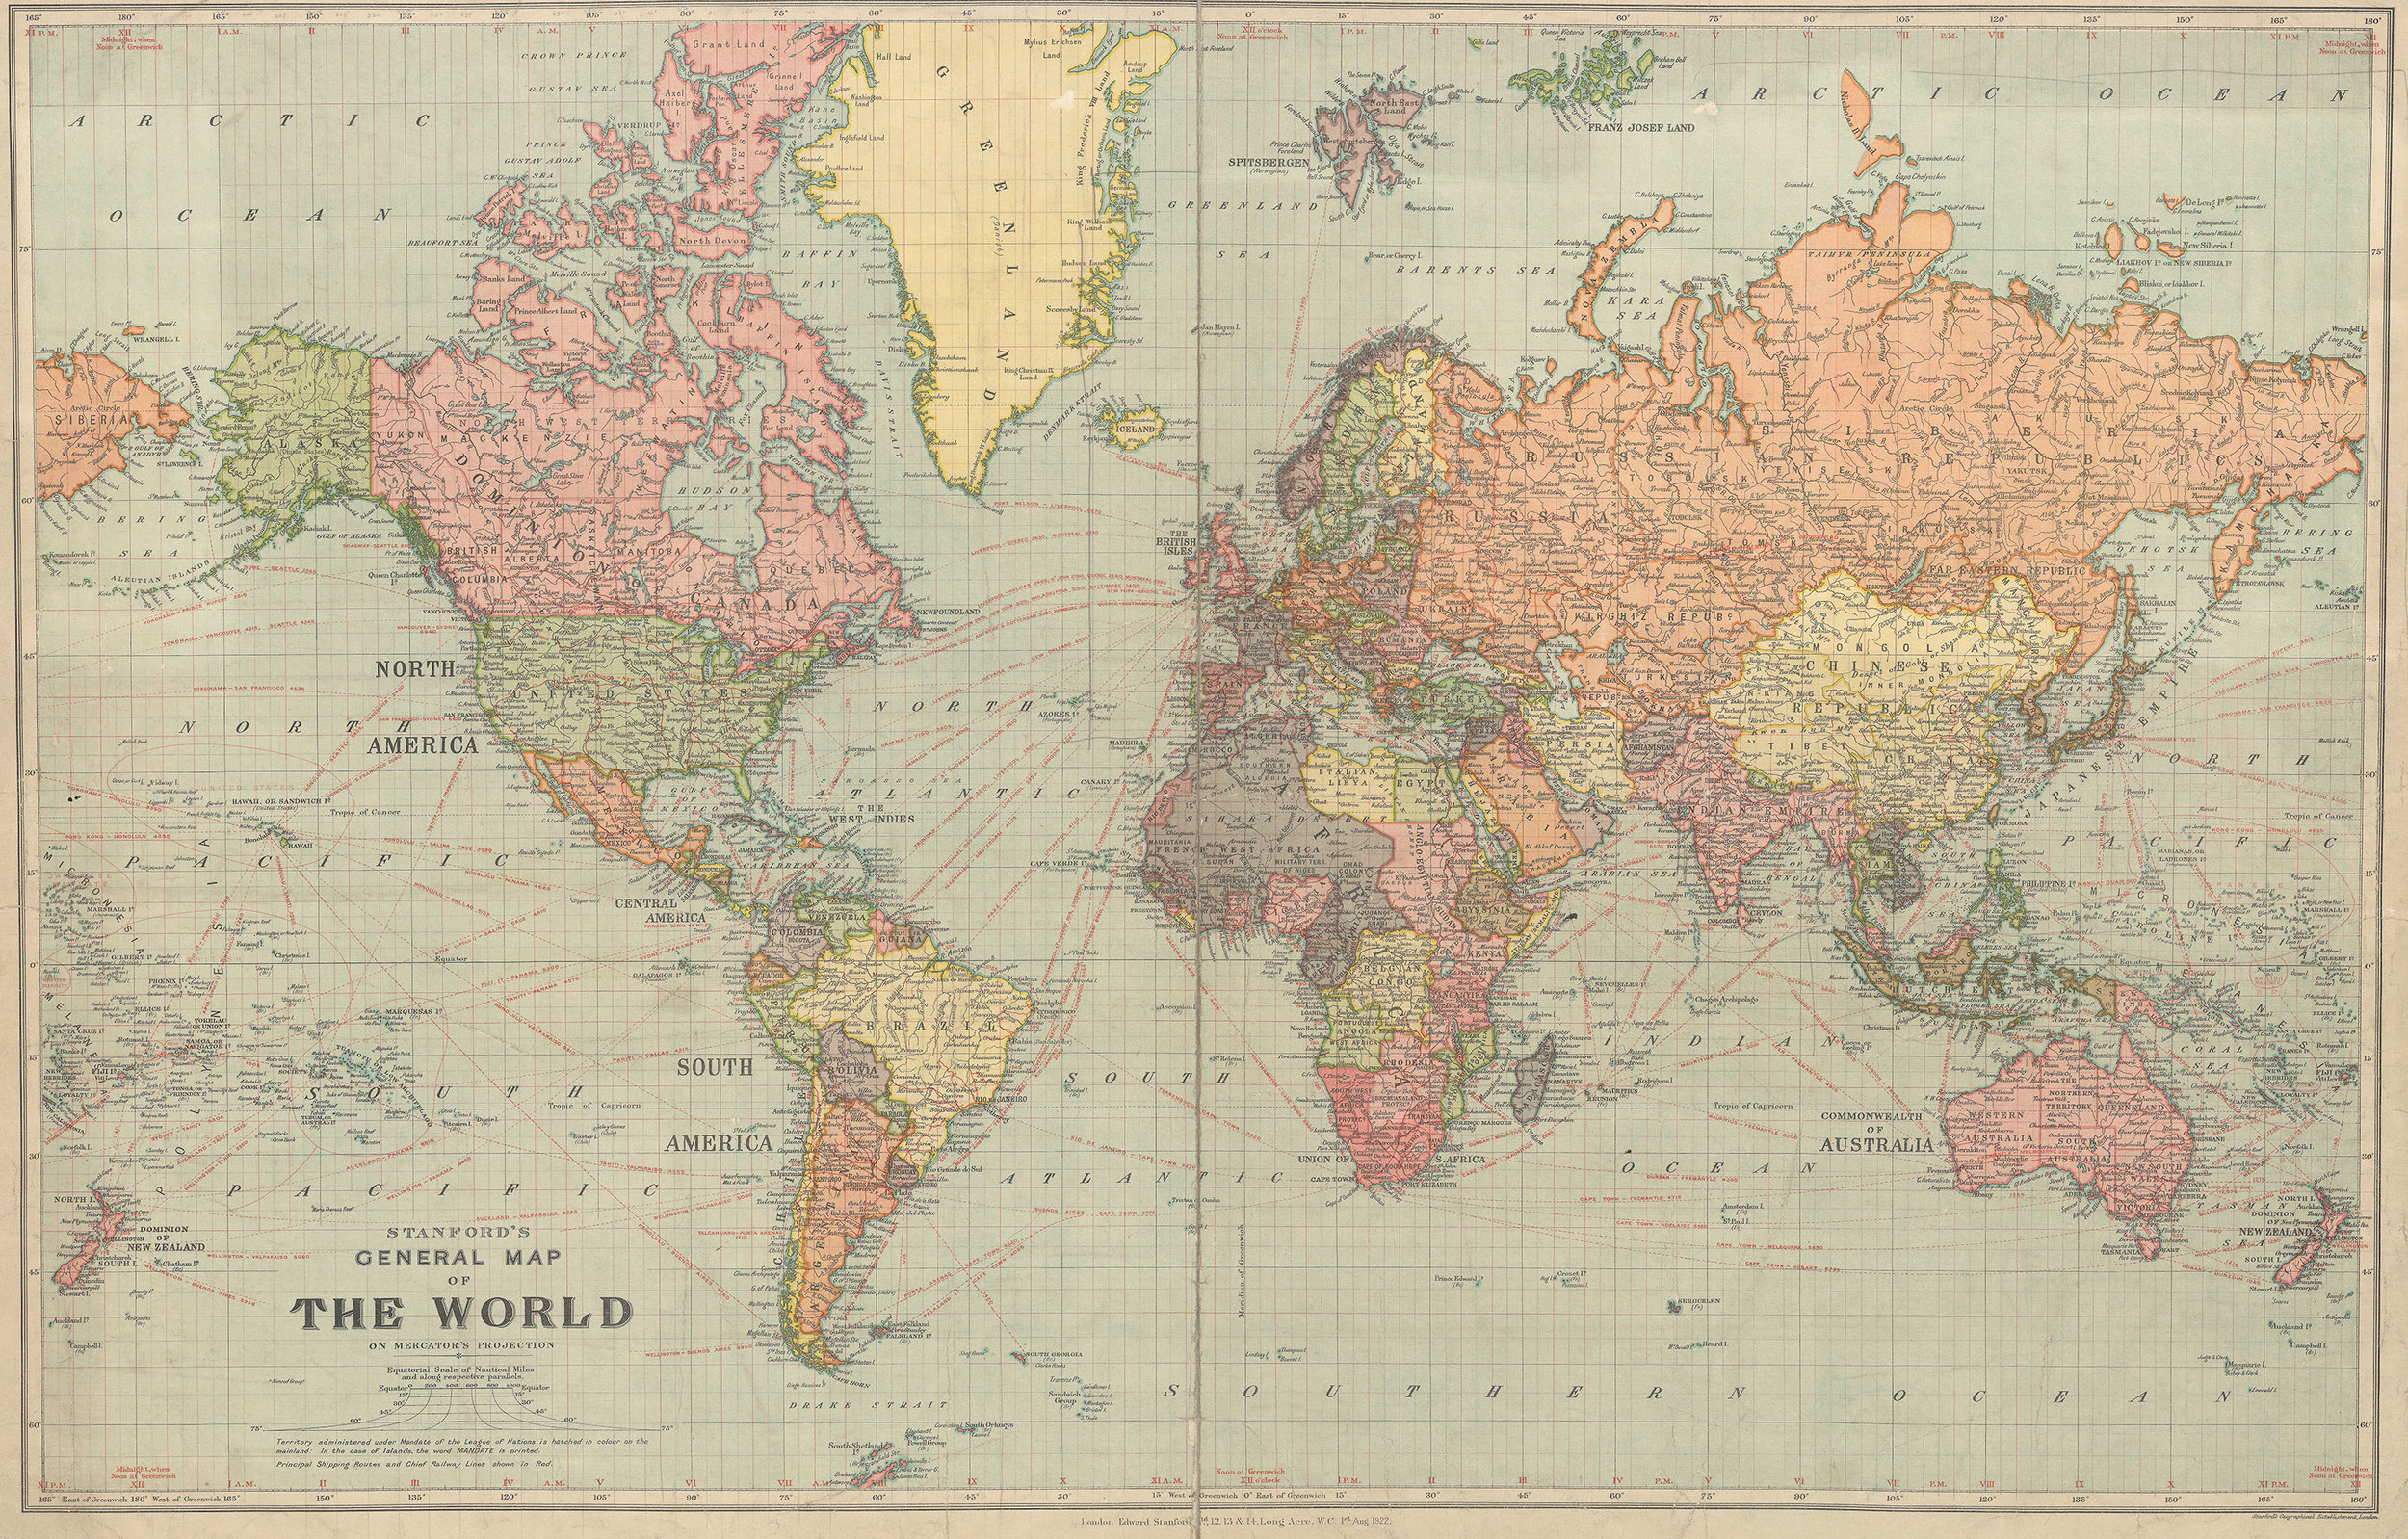 1922 General Map of the World.jpg